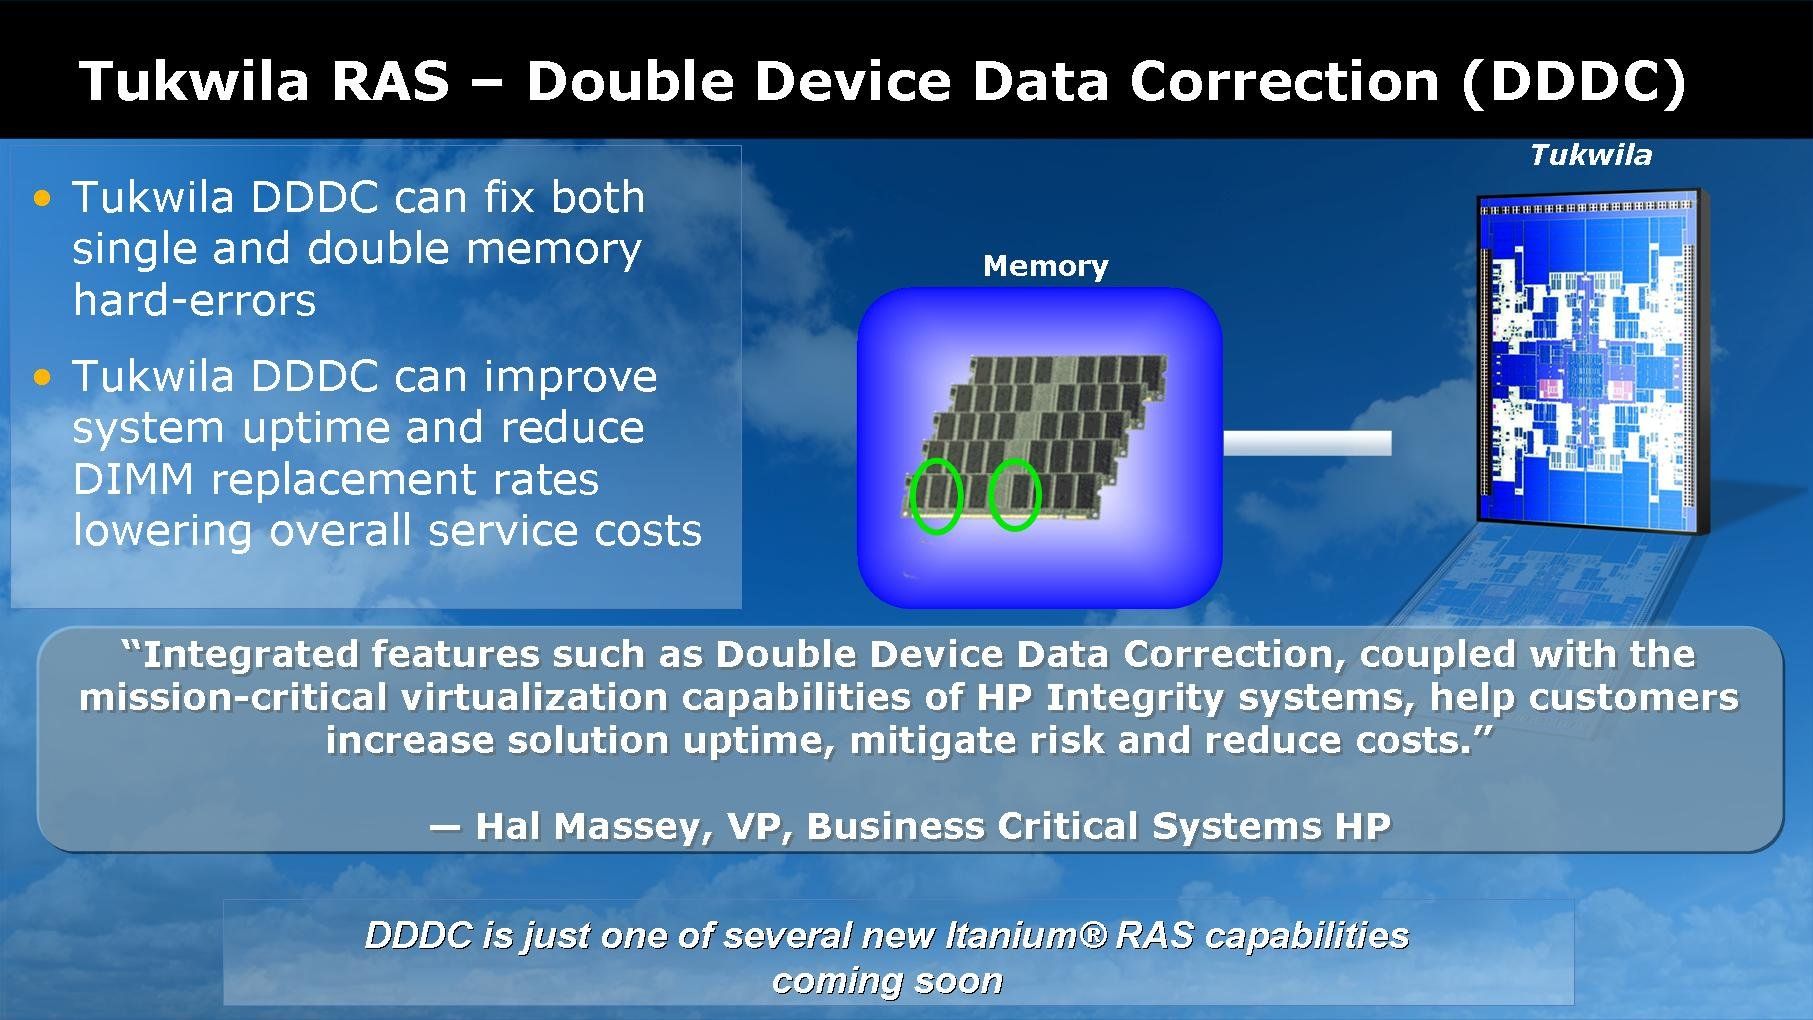 Neuerung in Tukwila: Double Device Data Correction (DDDC)